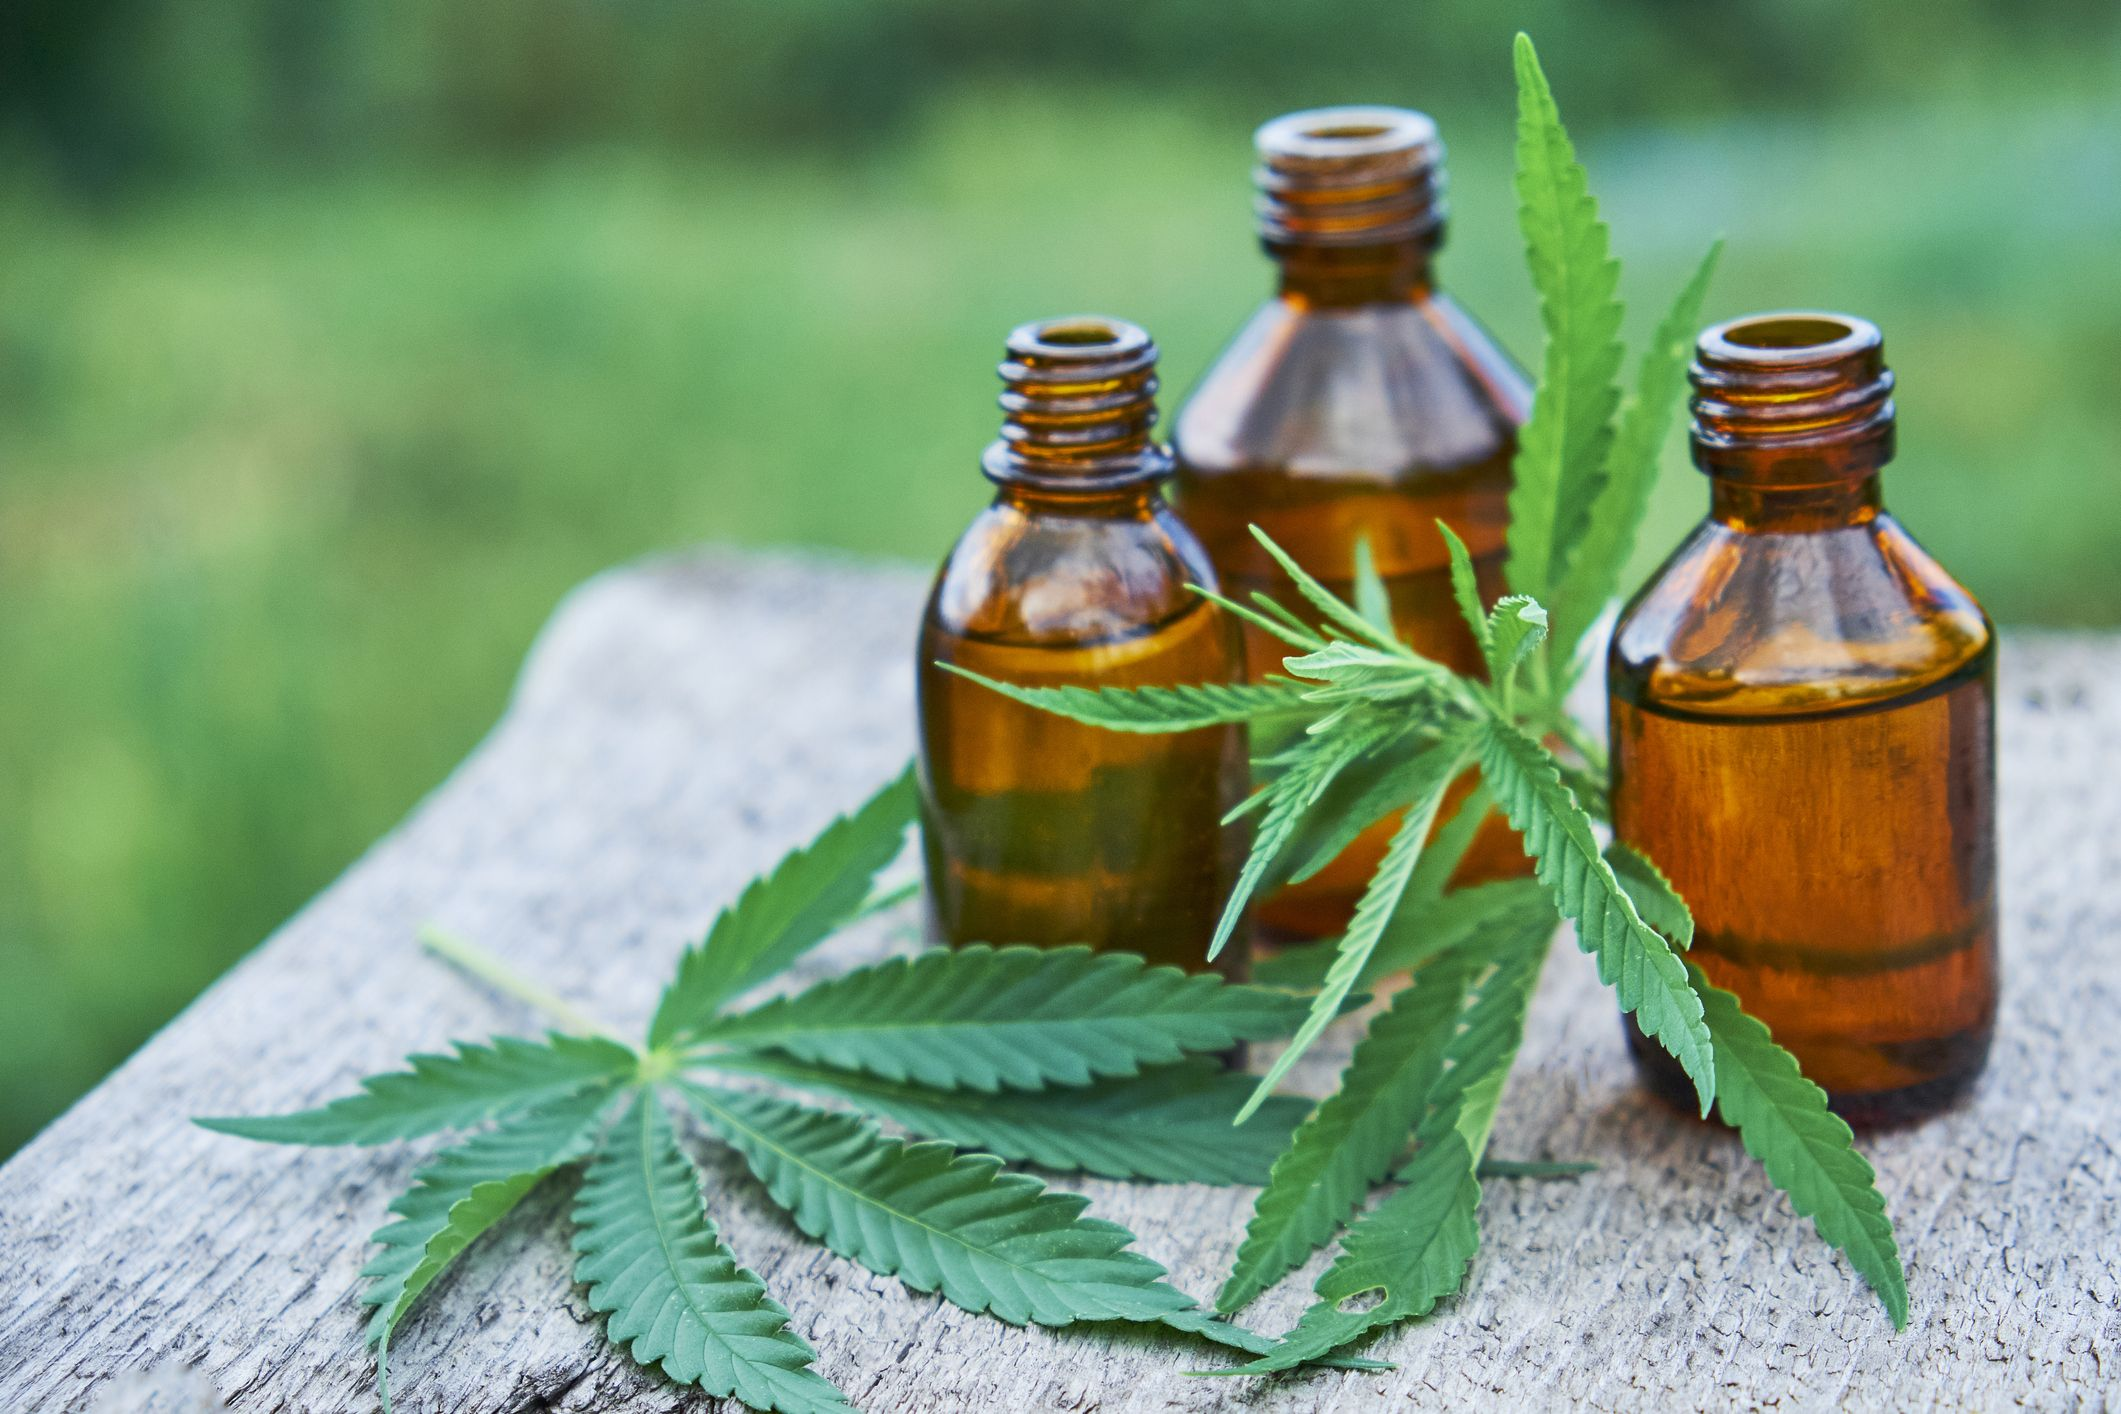 Are Hemp Oil Benefits Real Experts Weigh In